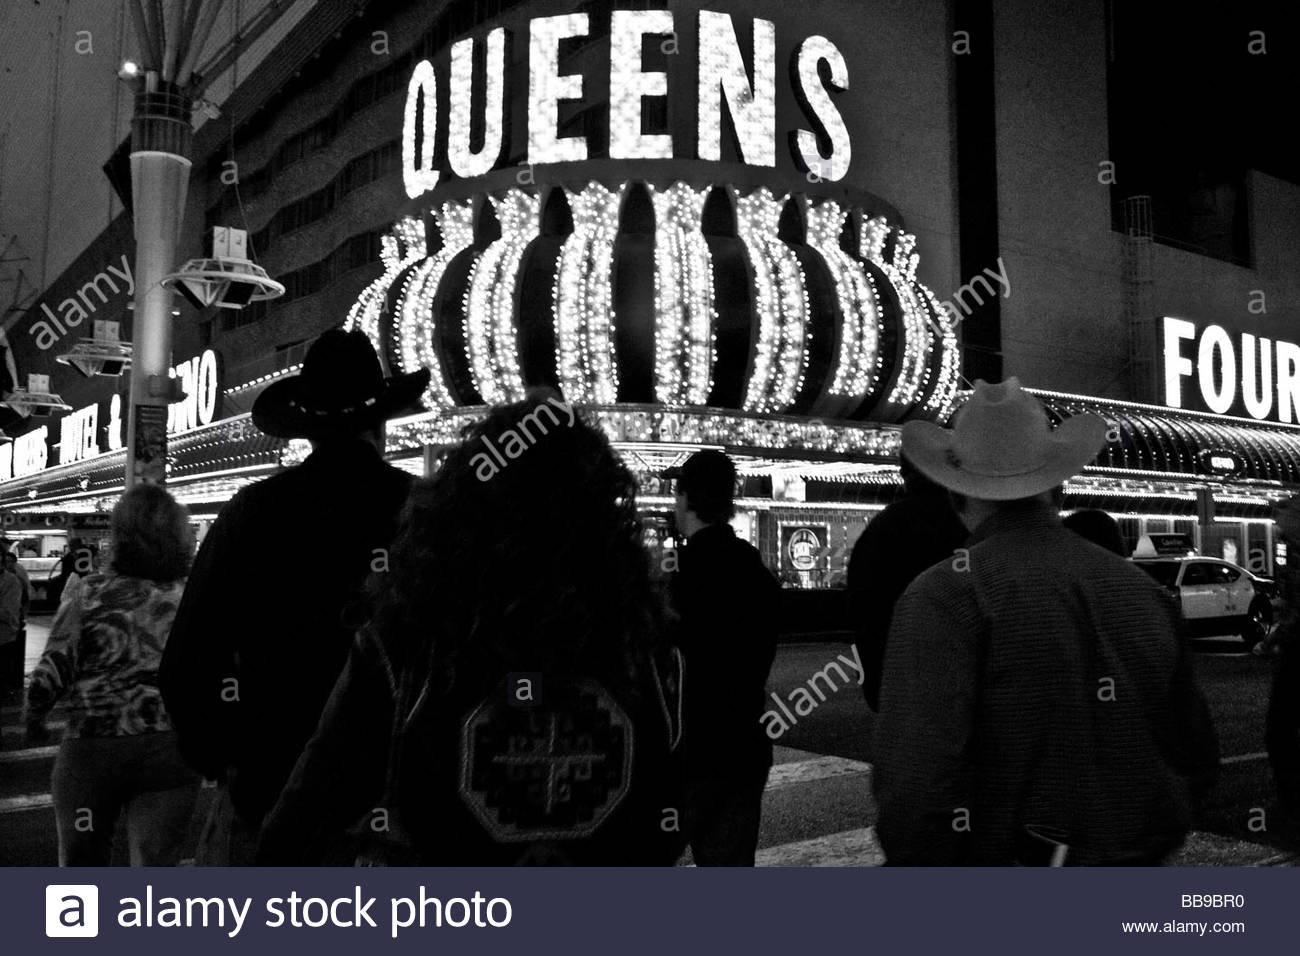 Fremont Street - Las Vegas - location of majority of vintage casinos.  4 Queens Casino lights and passersby - Stock Image